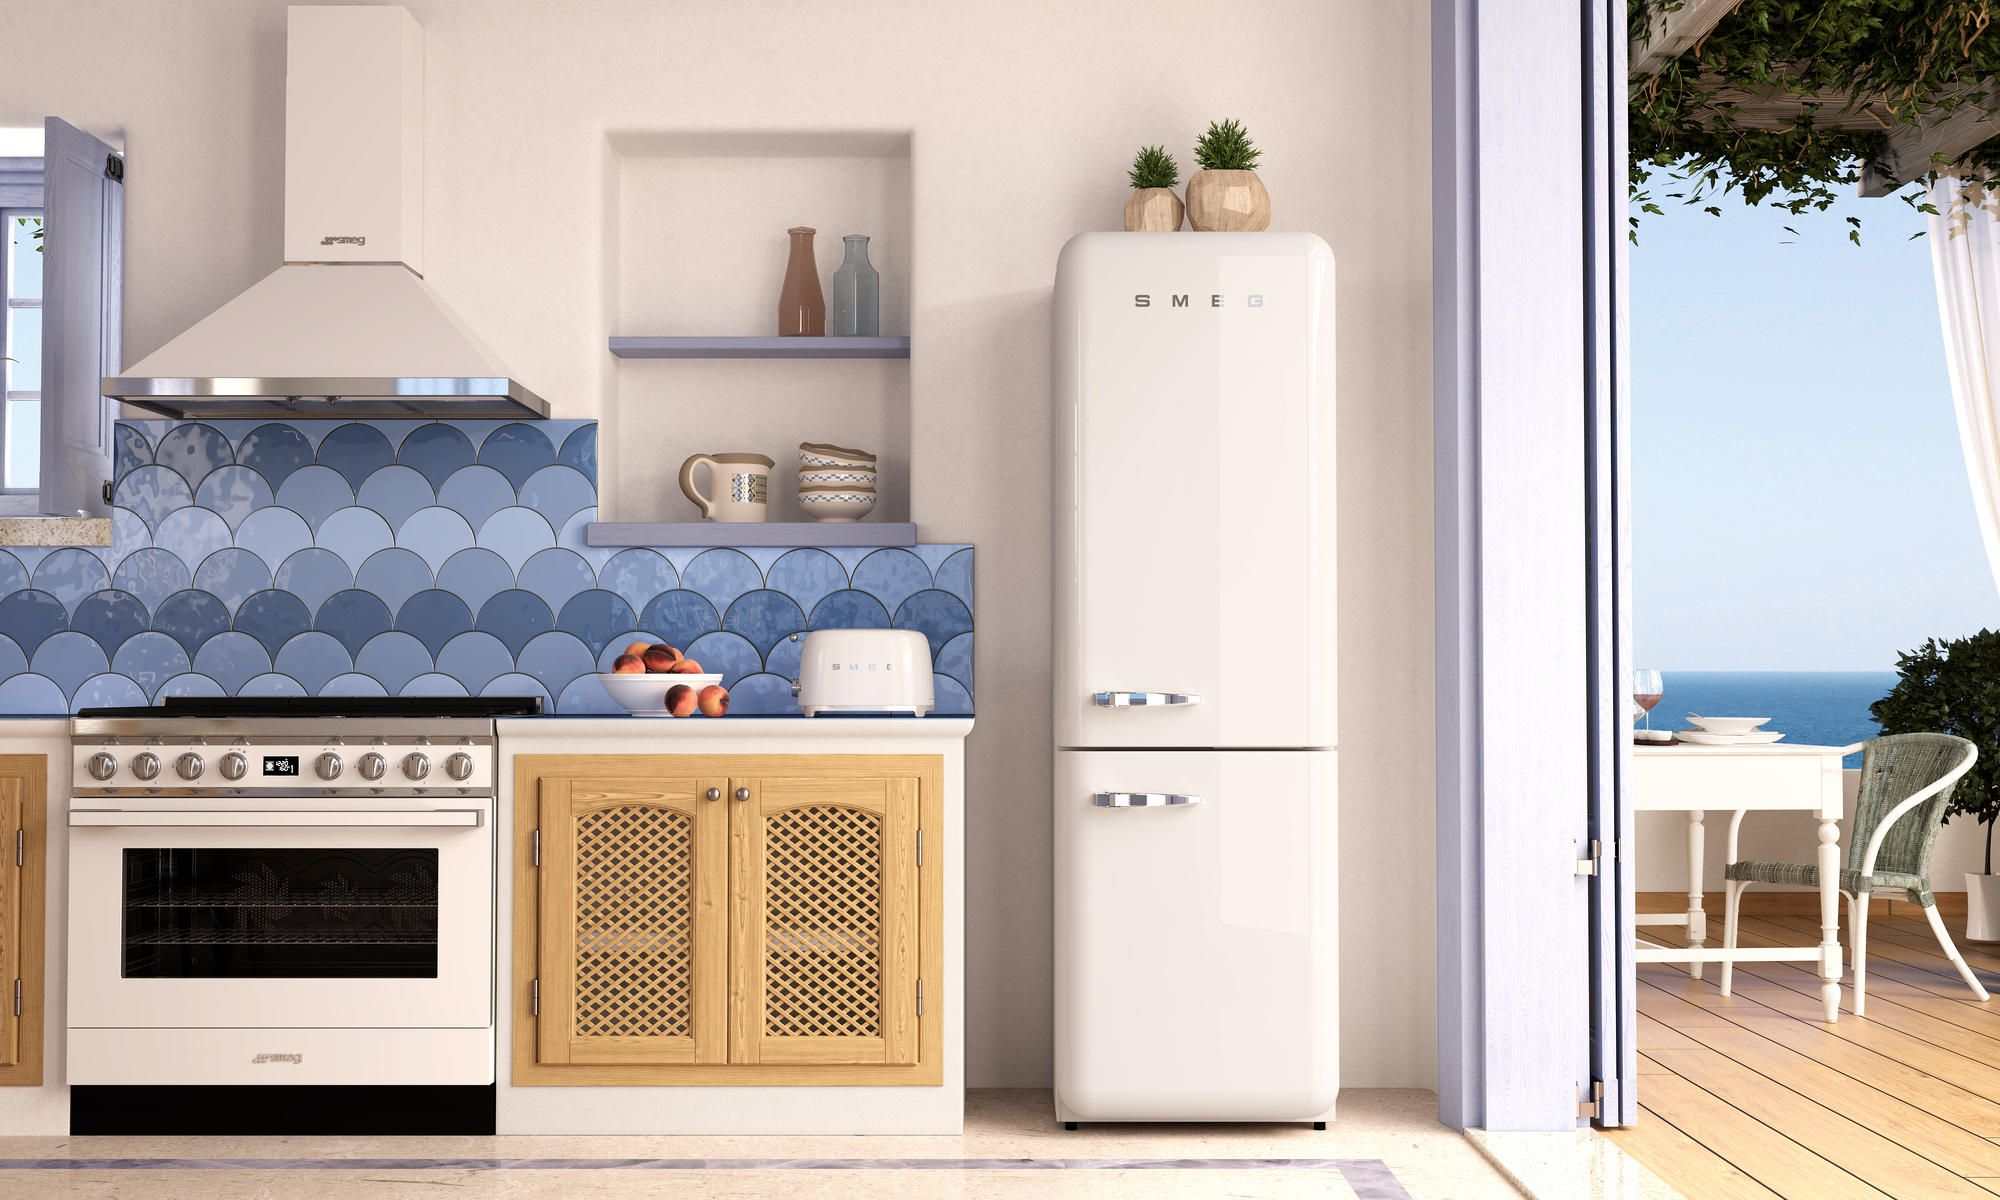 Home Tips: 6 Must-Have Items From SMEG For A Picture-Perfect Beach House Kitchen